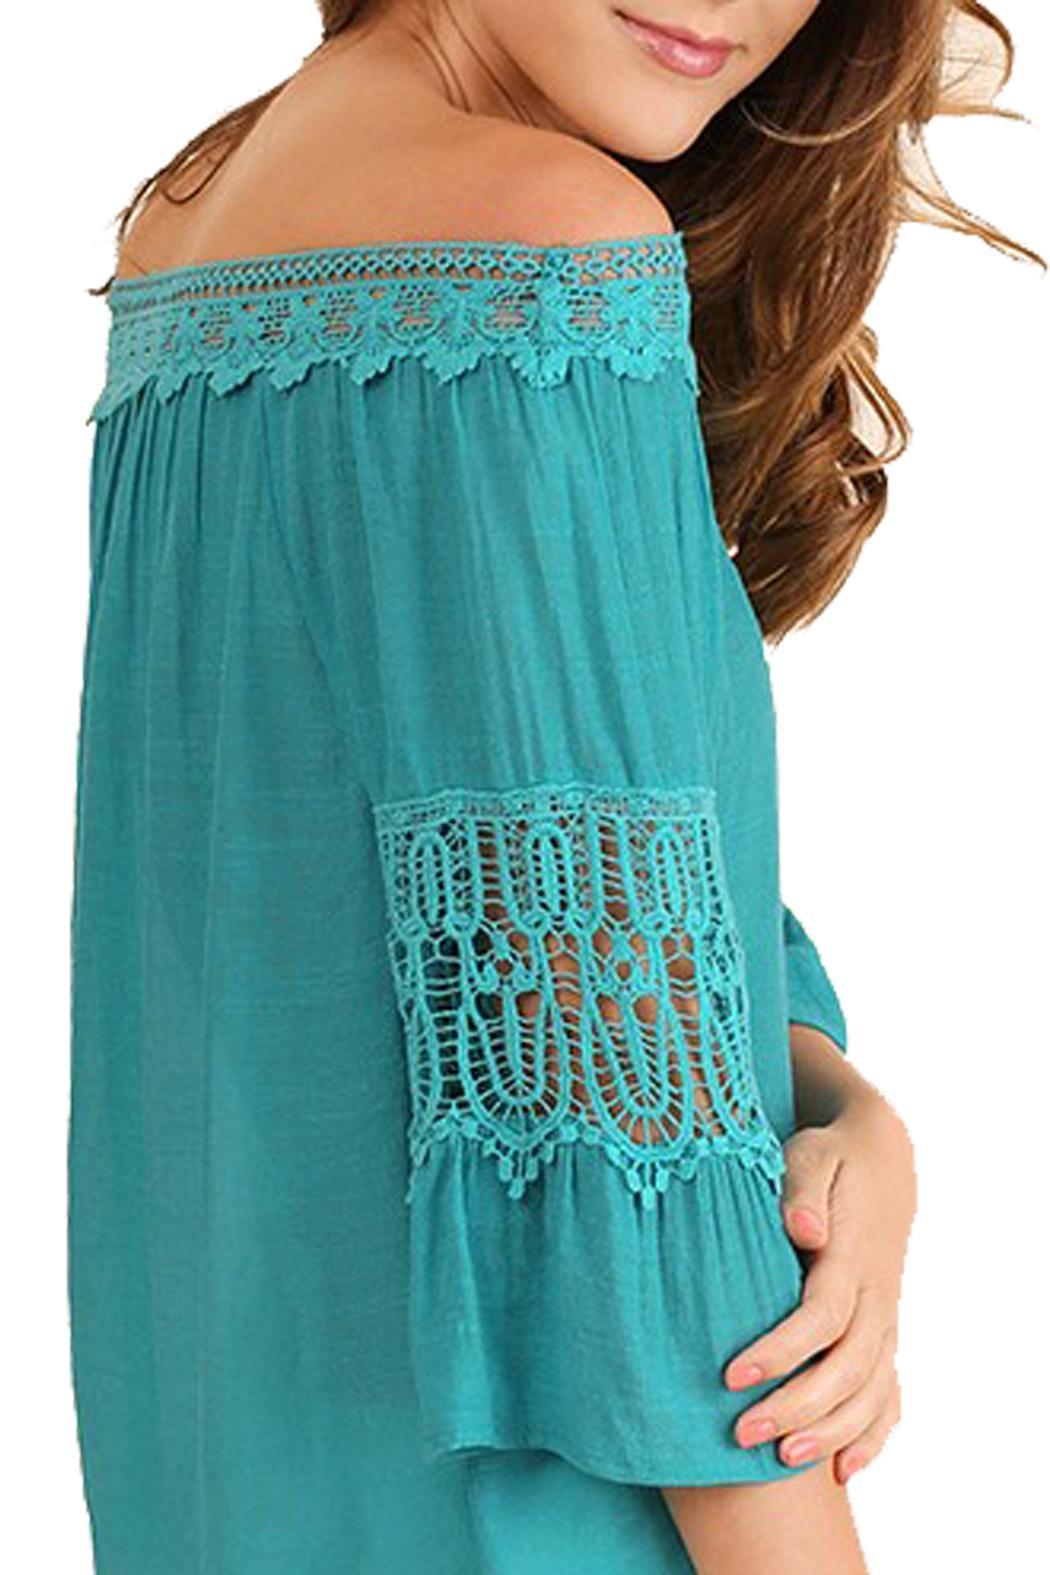 Umgee USA Teal Off-The-Shoulder Top - Front Full Image